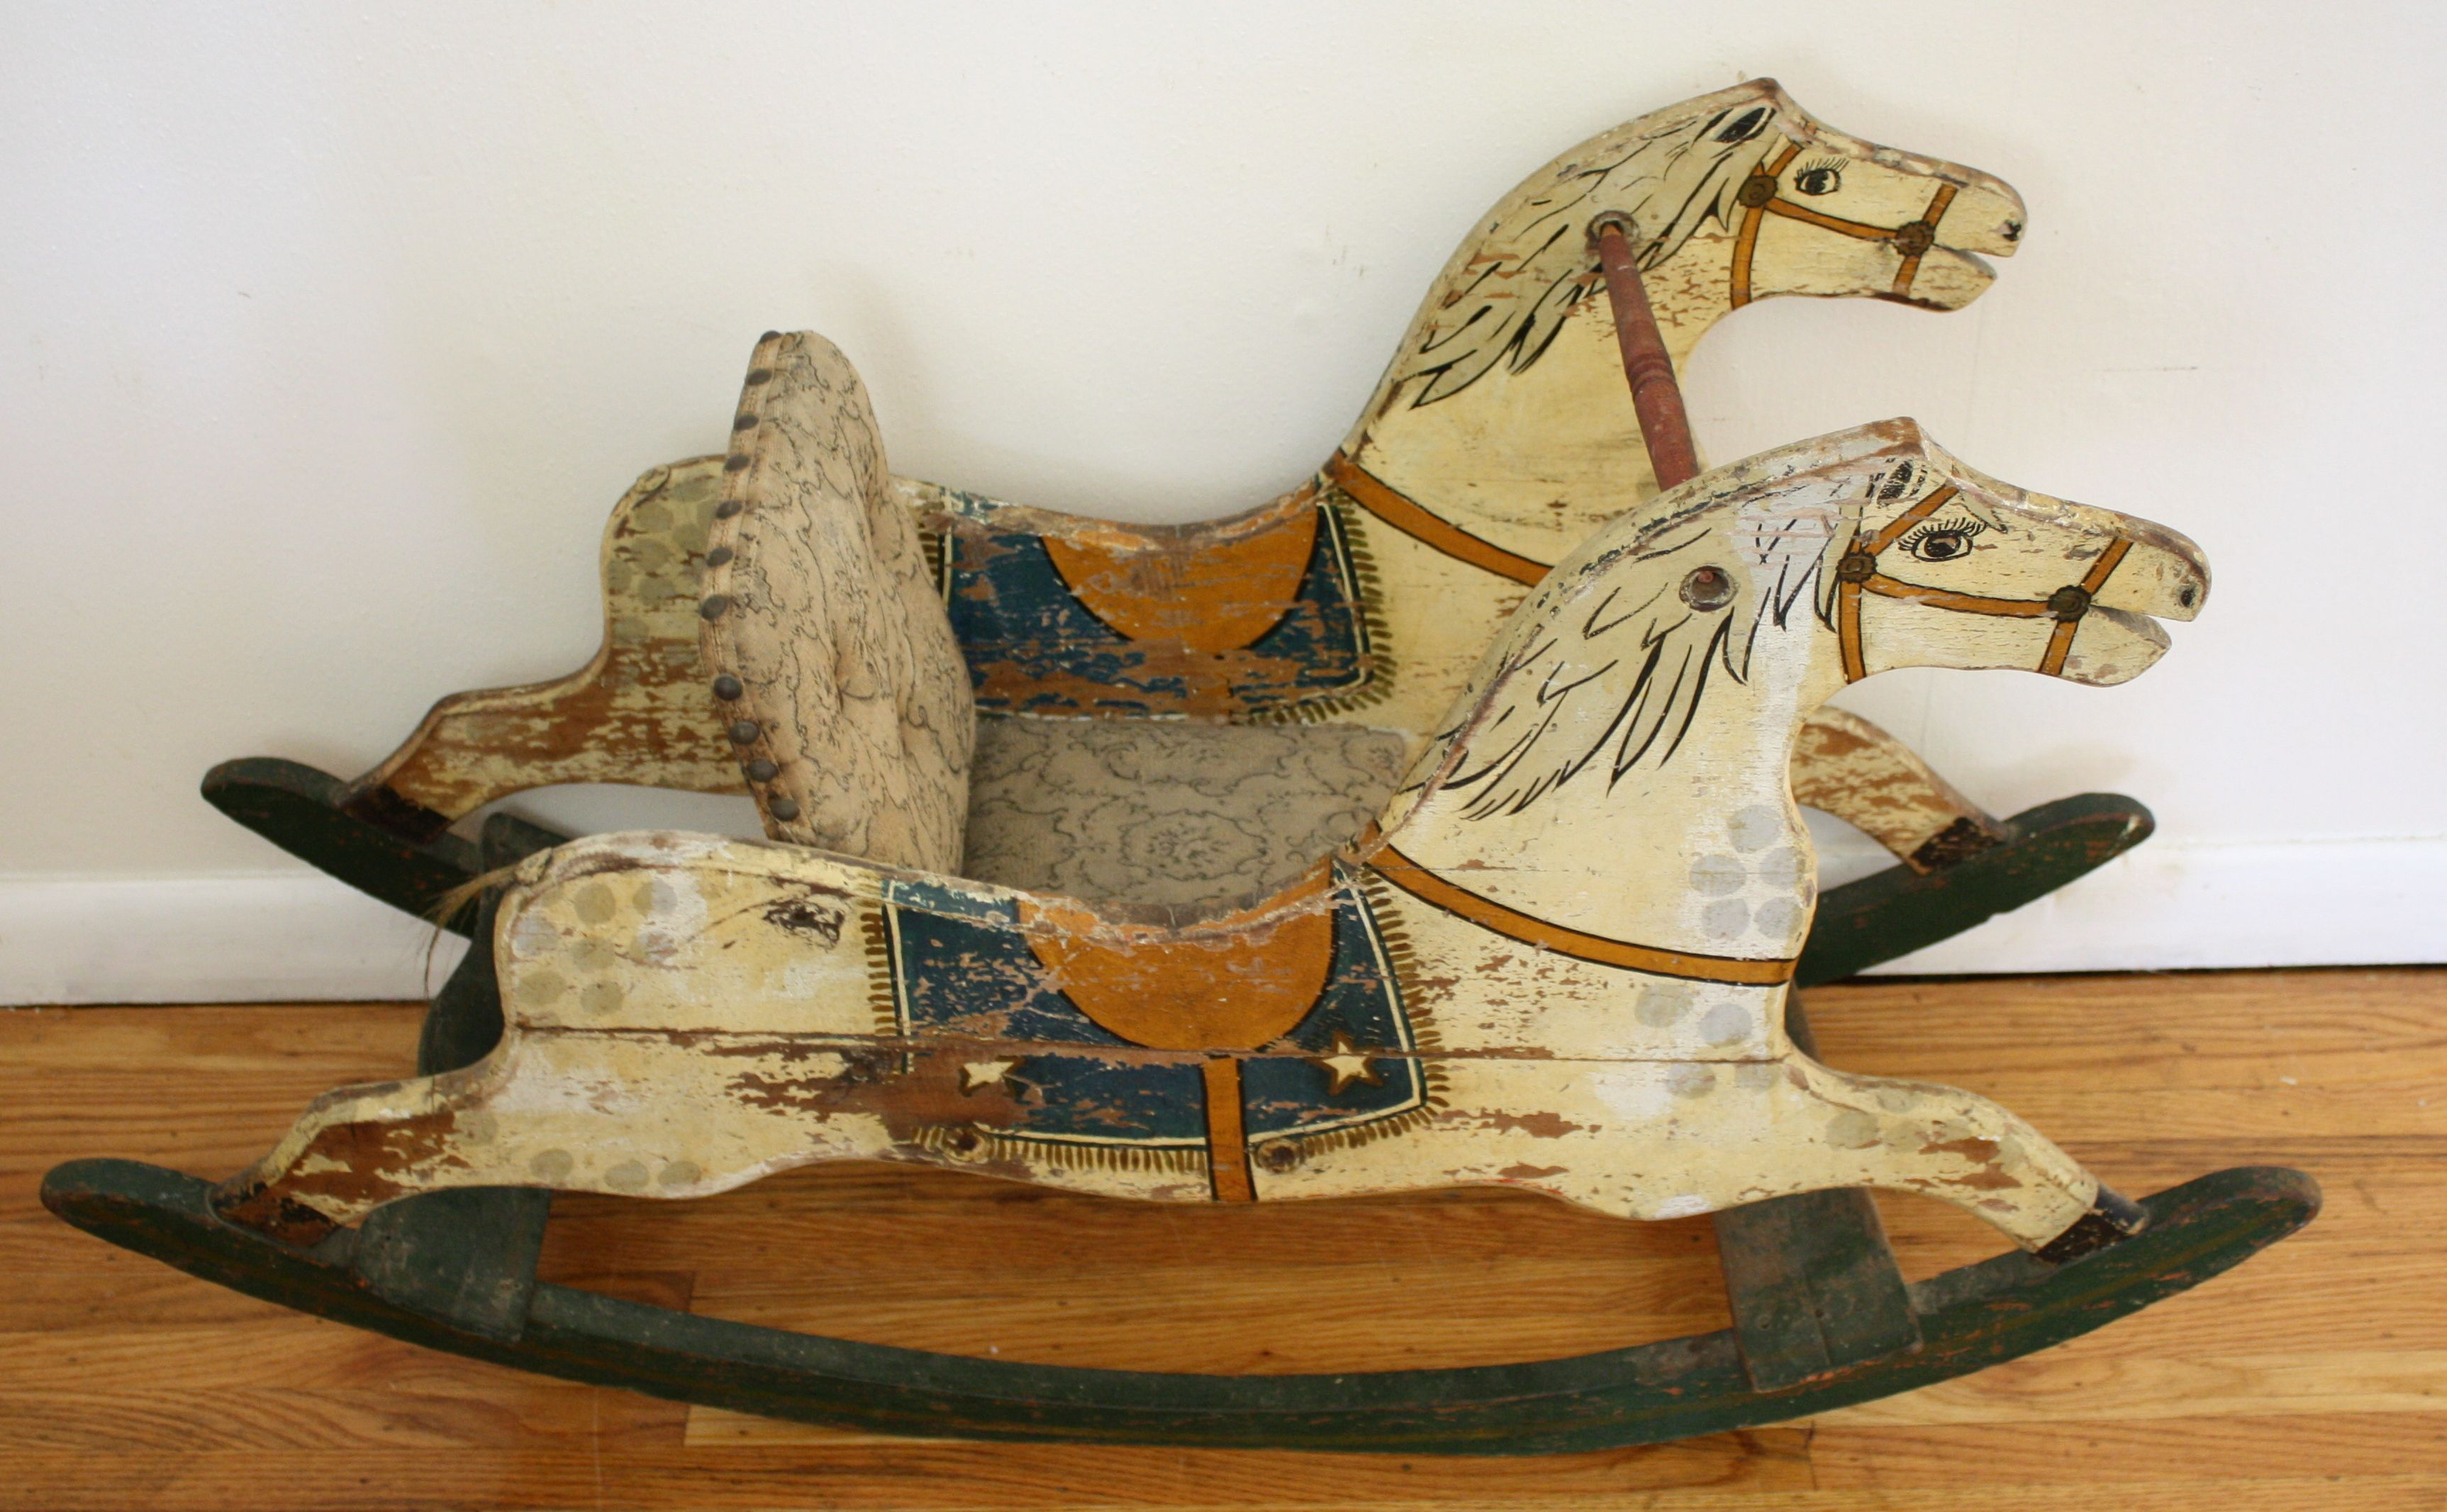 Antique Rocking Horse With Original Patina Antique Rocking Horse Rocking Horse Toy Rocking Horse